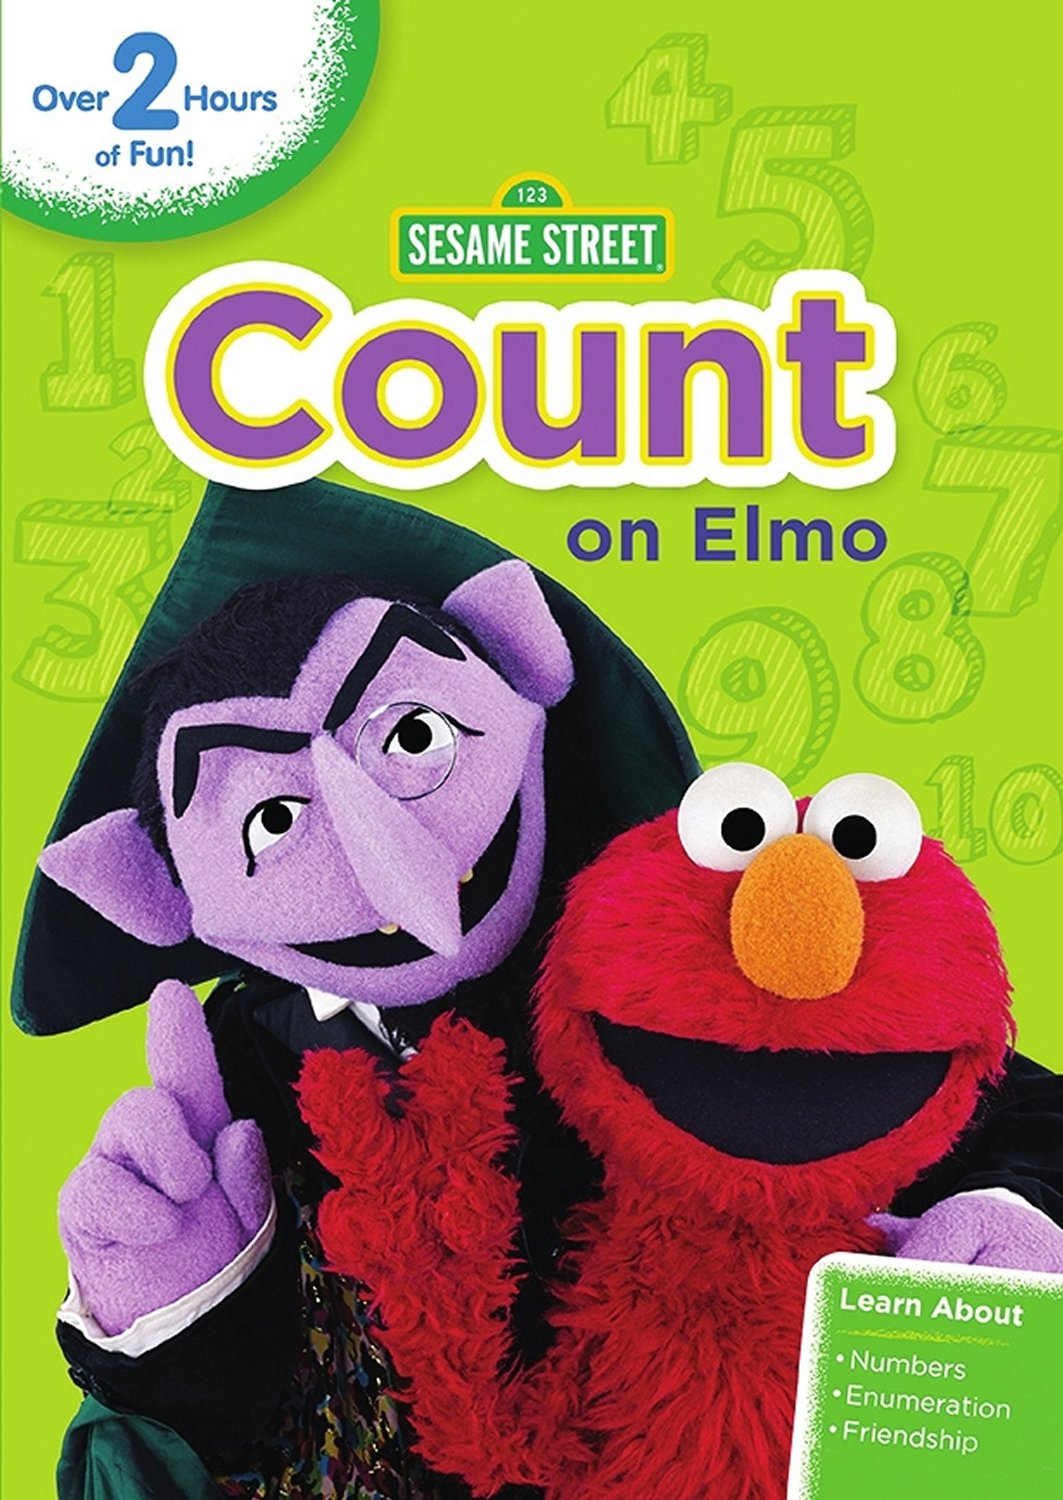 Count on Elmo